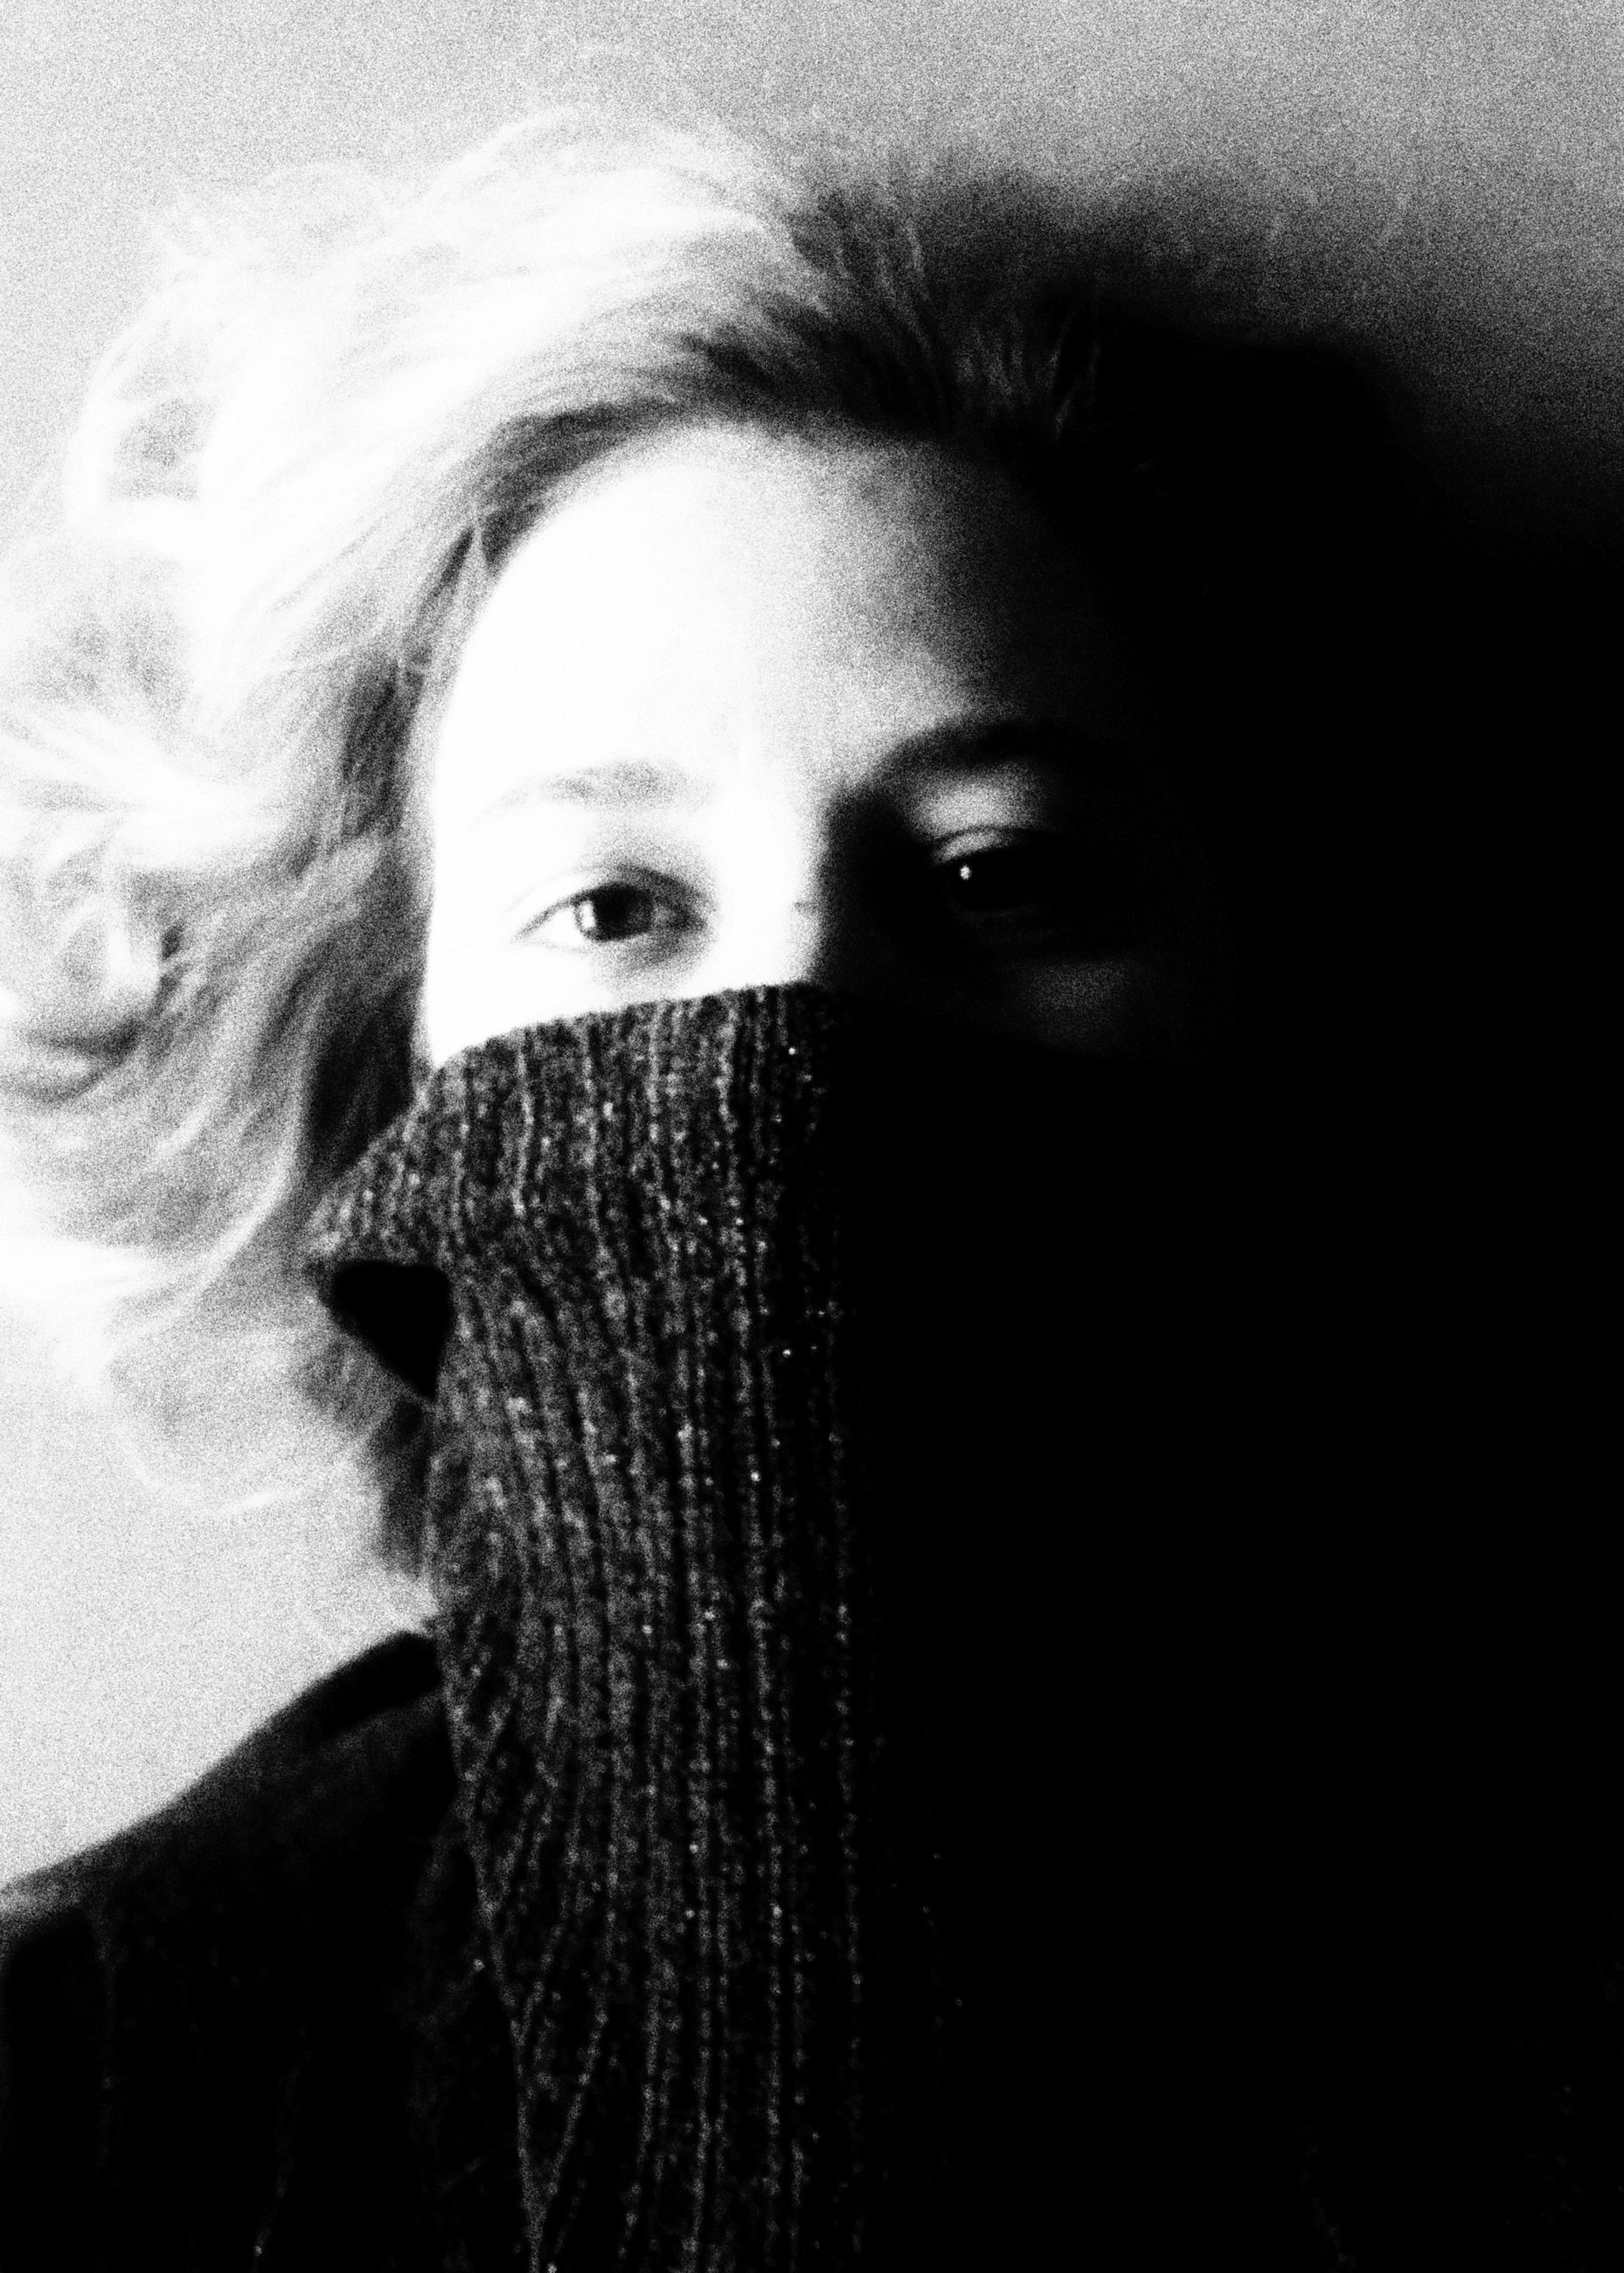 portrait, one person, looking at camera, headshot, young adult, body part, lifestyles, real people, front view, close-up, human body part, human face, young women, leisure activity, obscured face, covering, indoors, women, human eye, beautiful woman, teenager, warm clothing, scarf